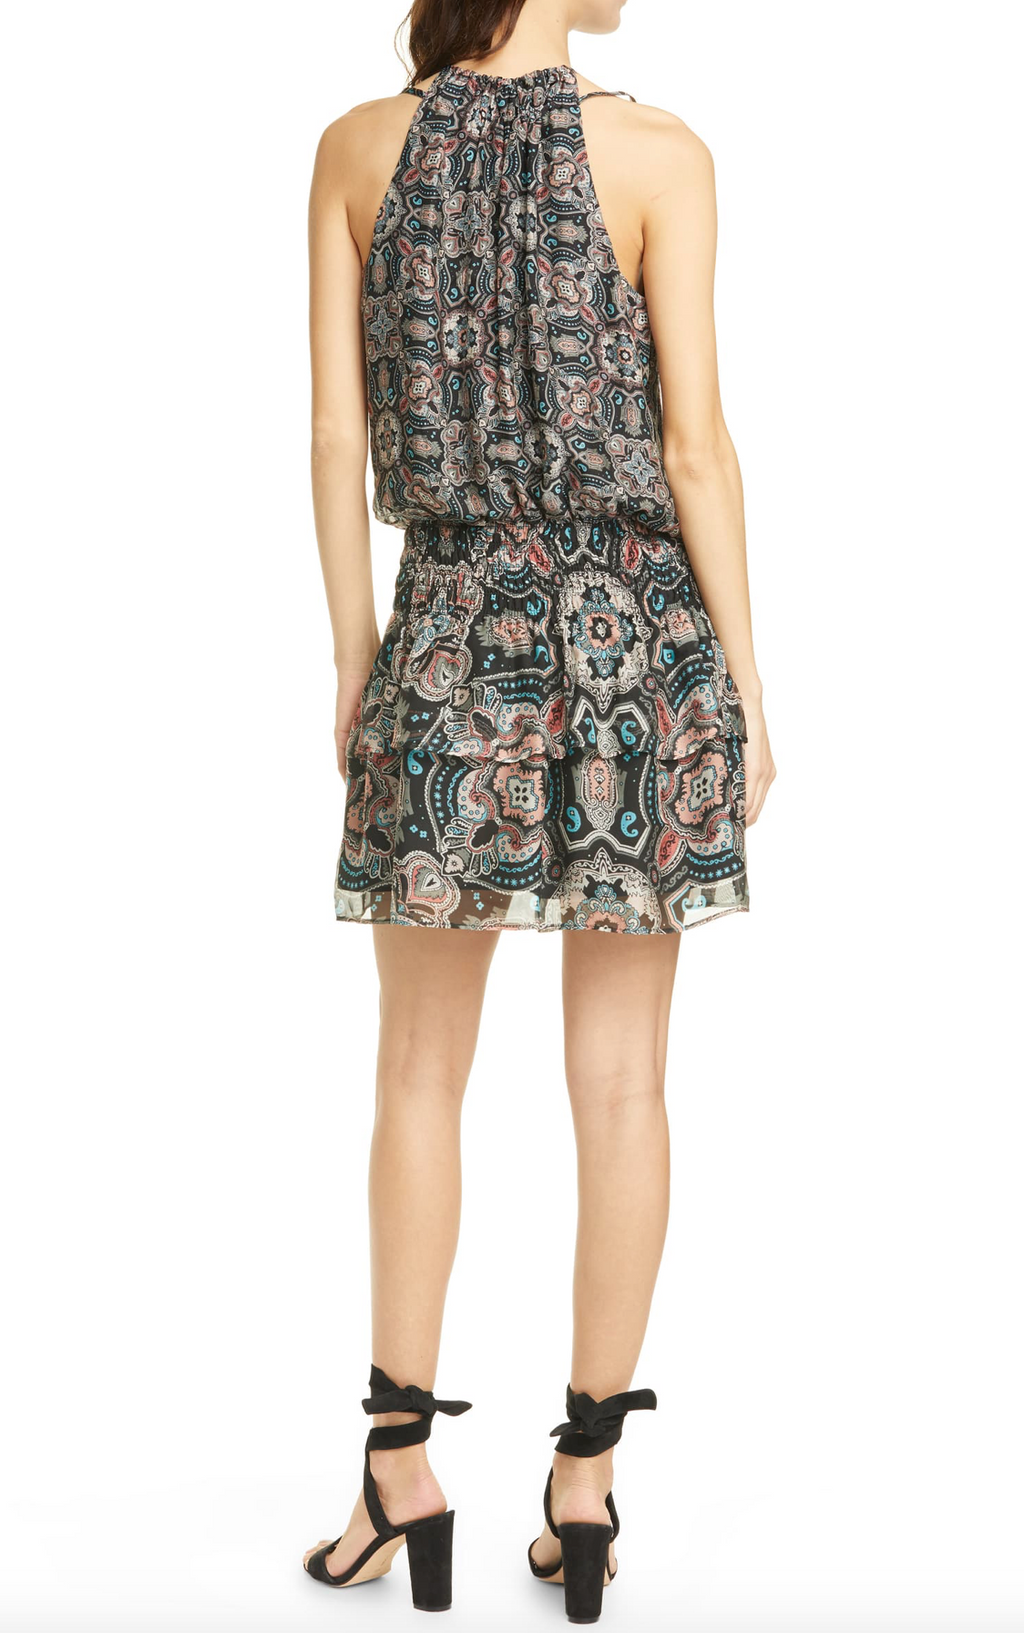 Ramy Brook - The Brady Dress in Black Combo Pring